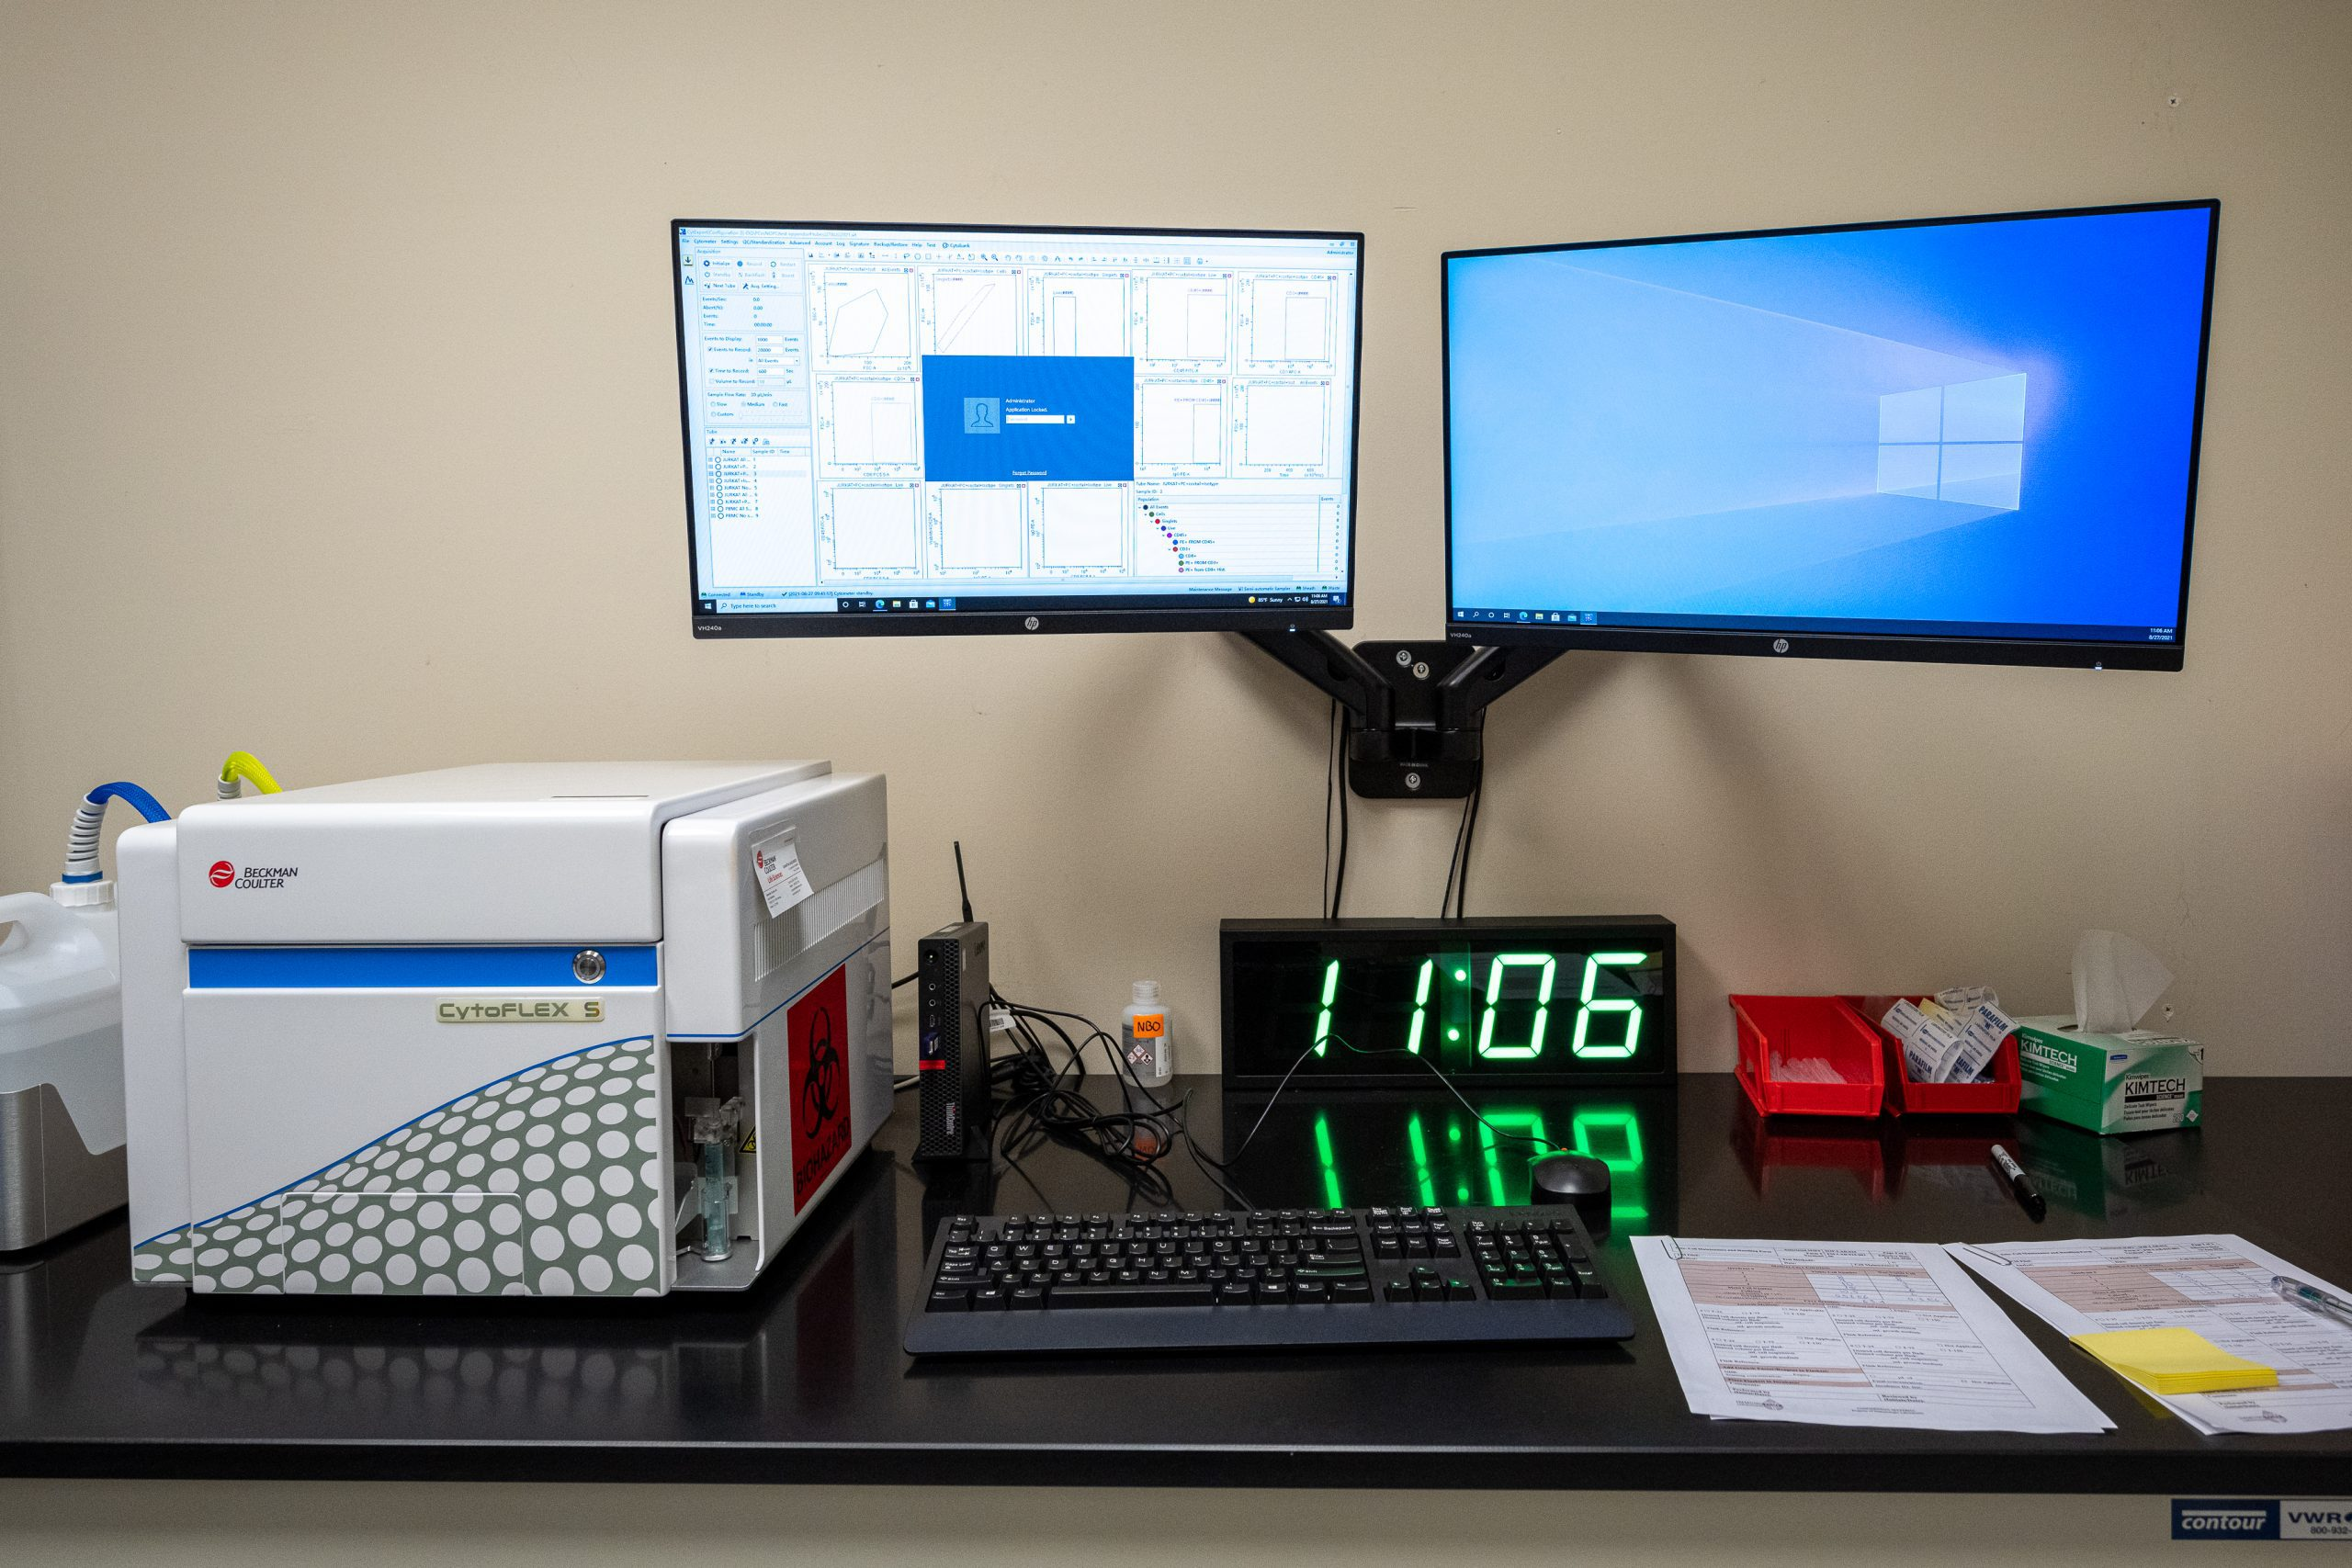 Beckman Coulter CytoFLEX S Flow Cytometer